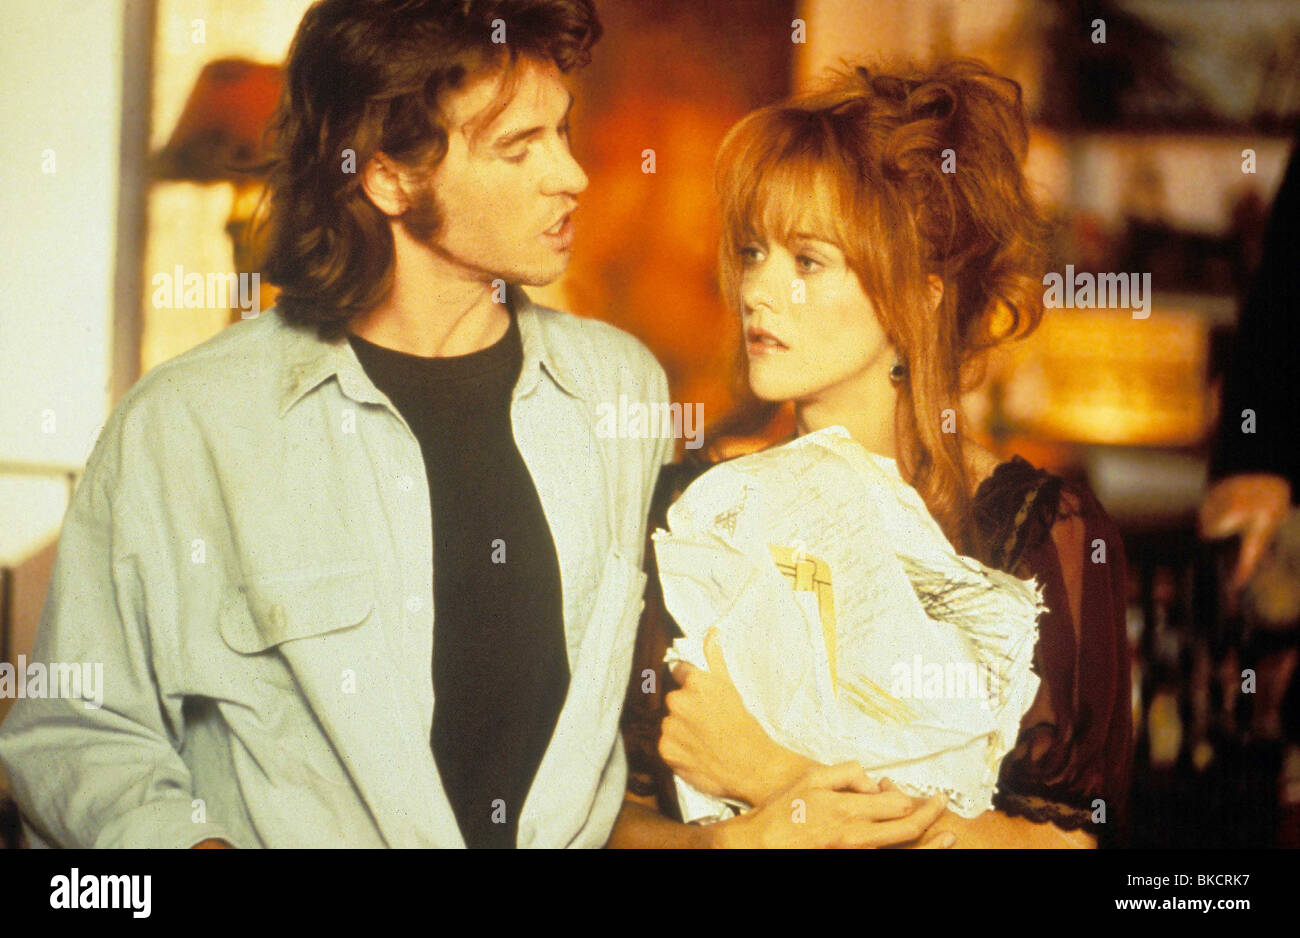 THE DOORS (1991) VAL KILMER MEG RYAN DRS 003  sc 1 st  Alamy & THE DOORS (1991) VAL KILMER MEG RYAN DRS 003 Stock Photo: 29170827 ...